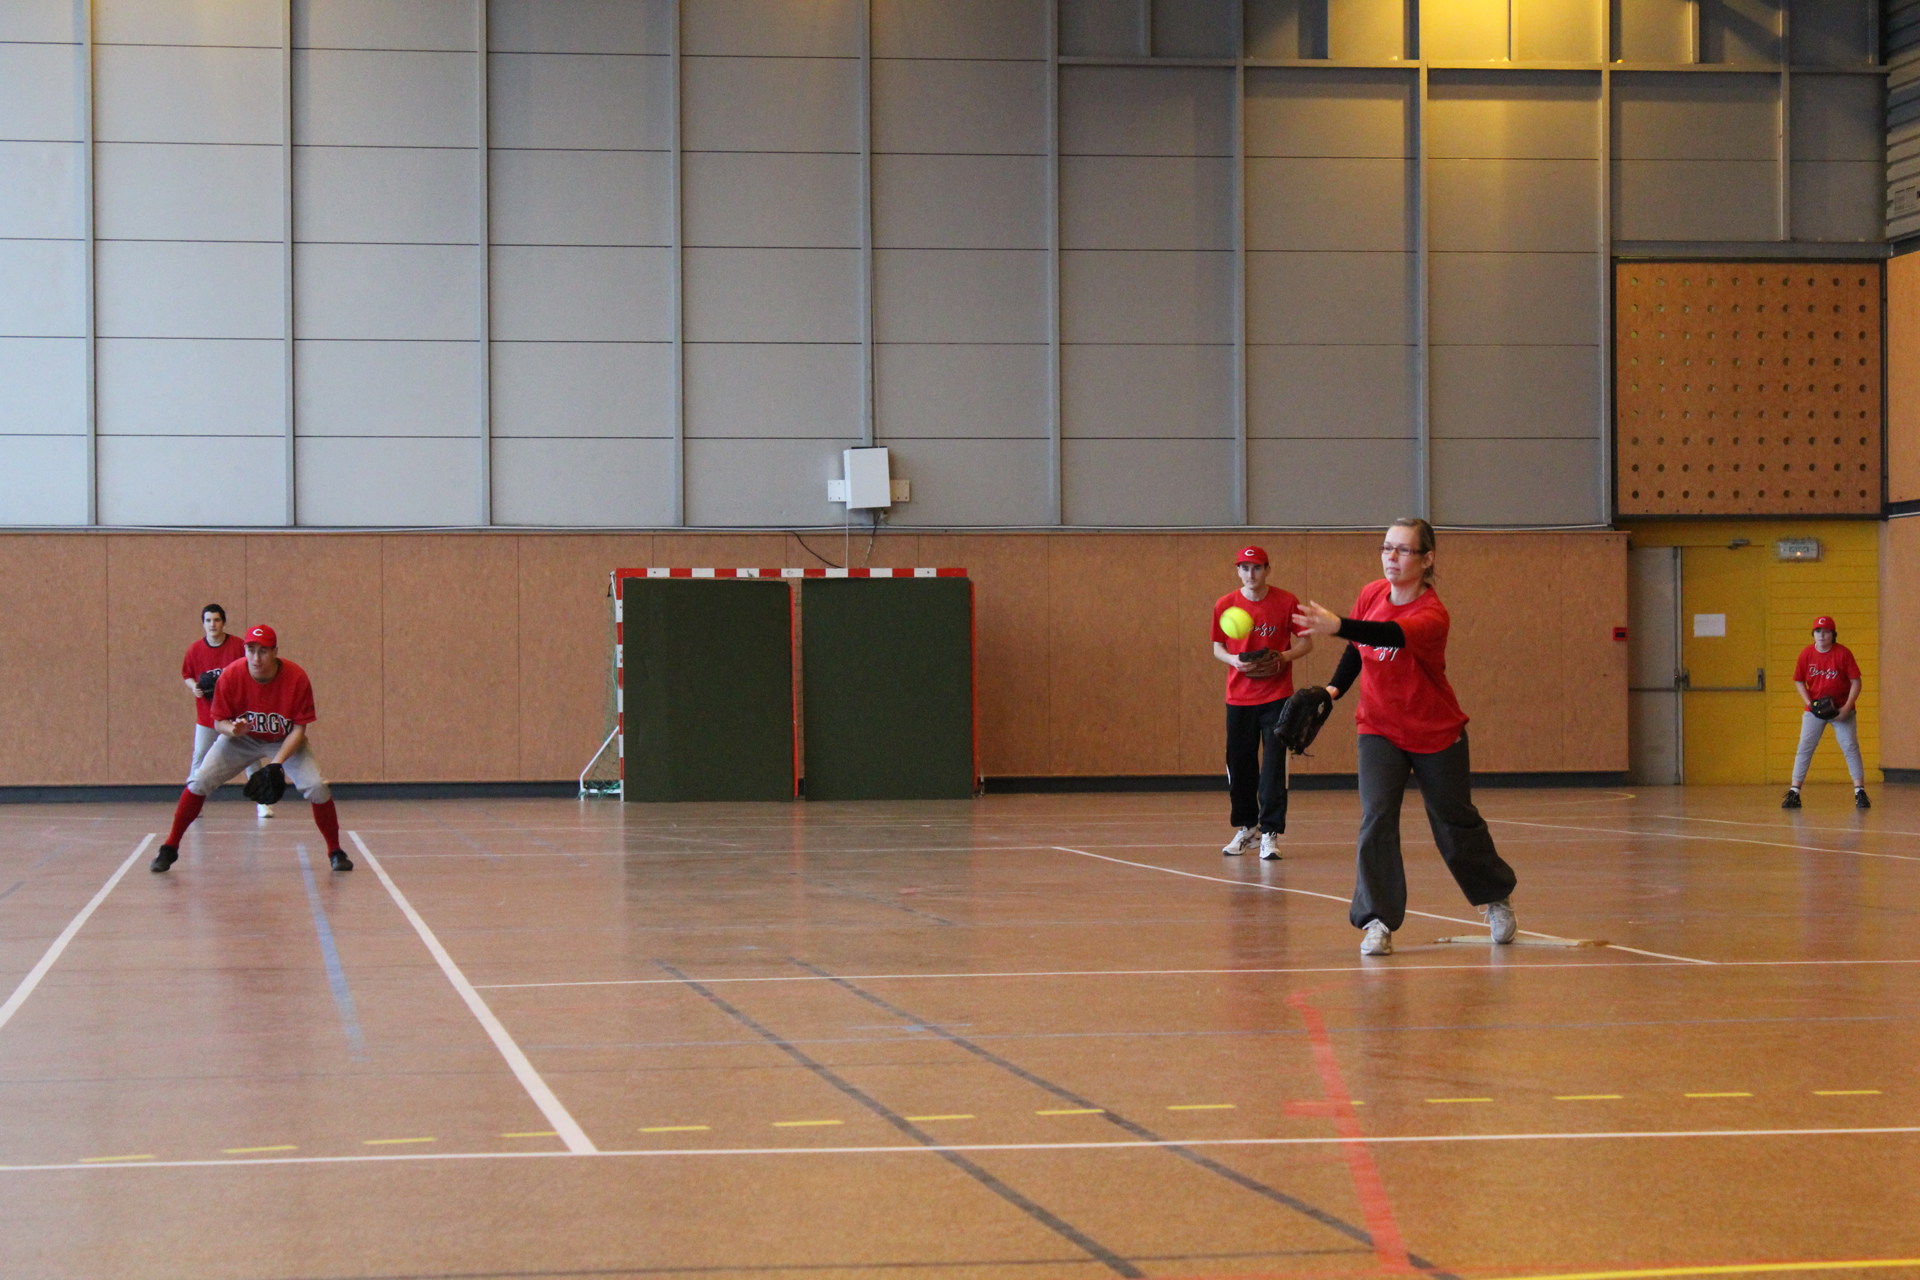 2011-02-06 Soft Mixte Indoor a Cergy (28)-resize